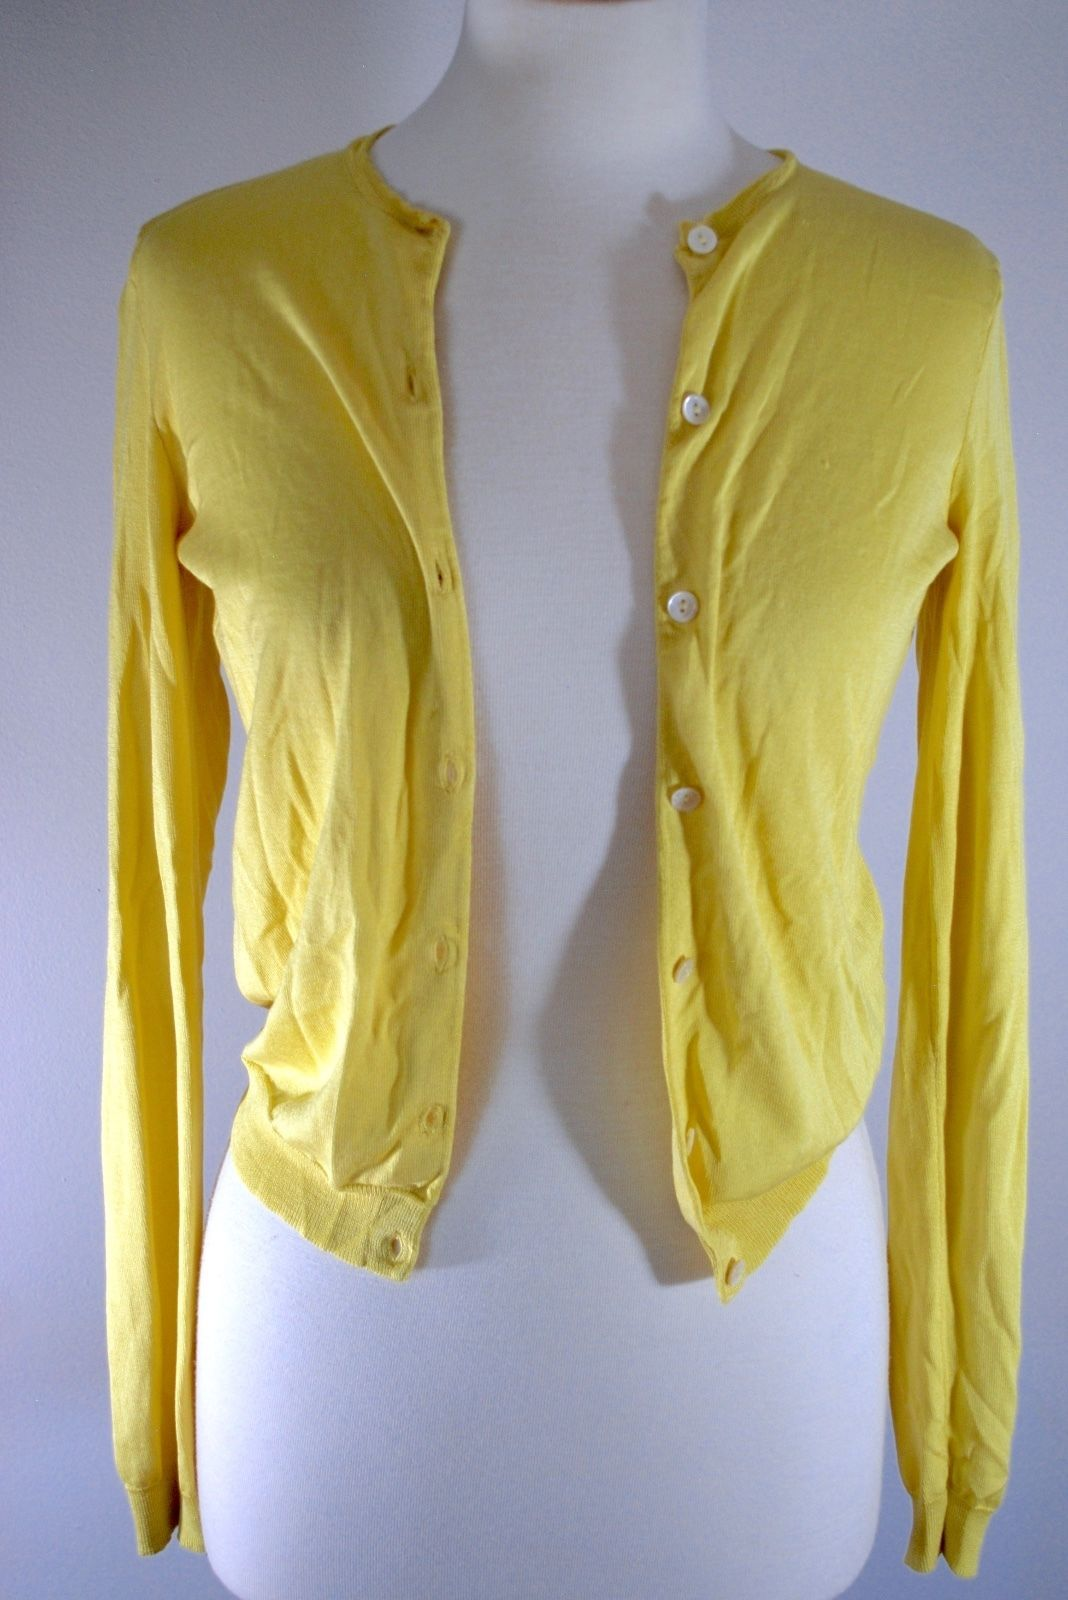 Yellow Gold Cardigan Sweater - Cashmere Sweater England